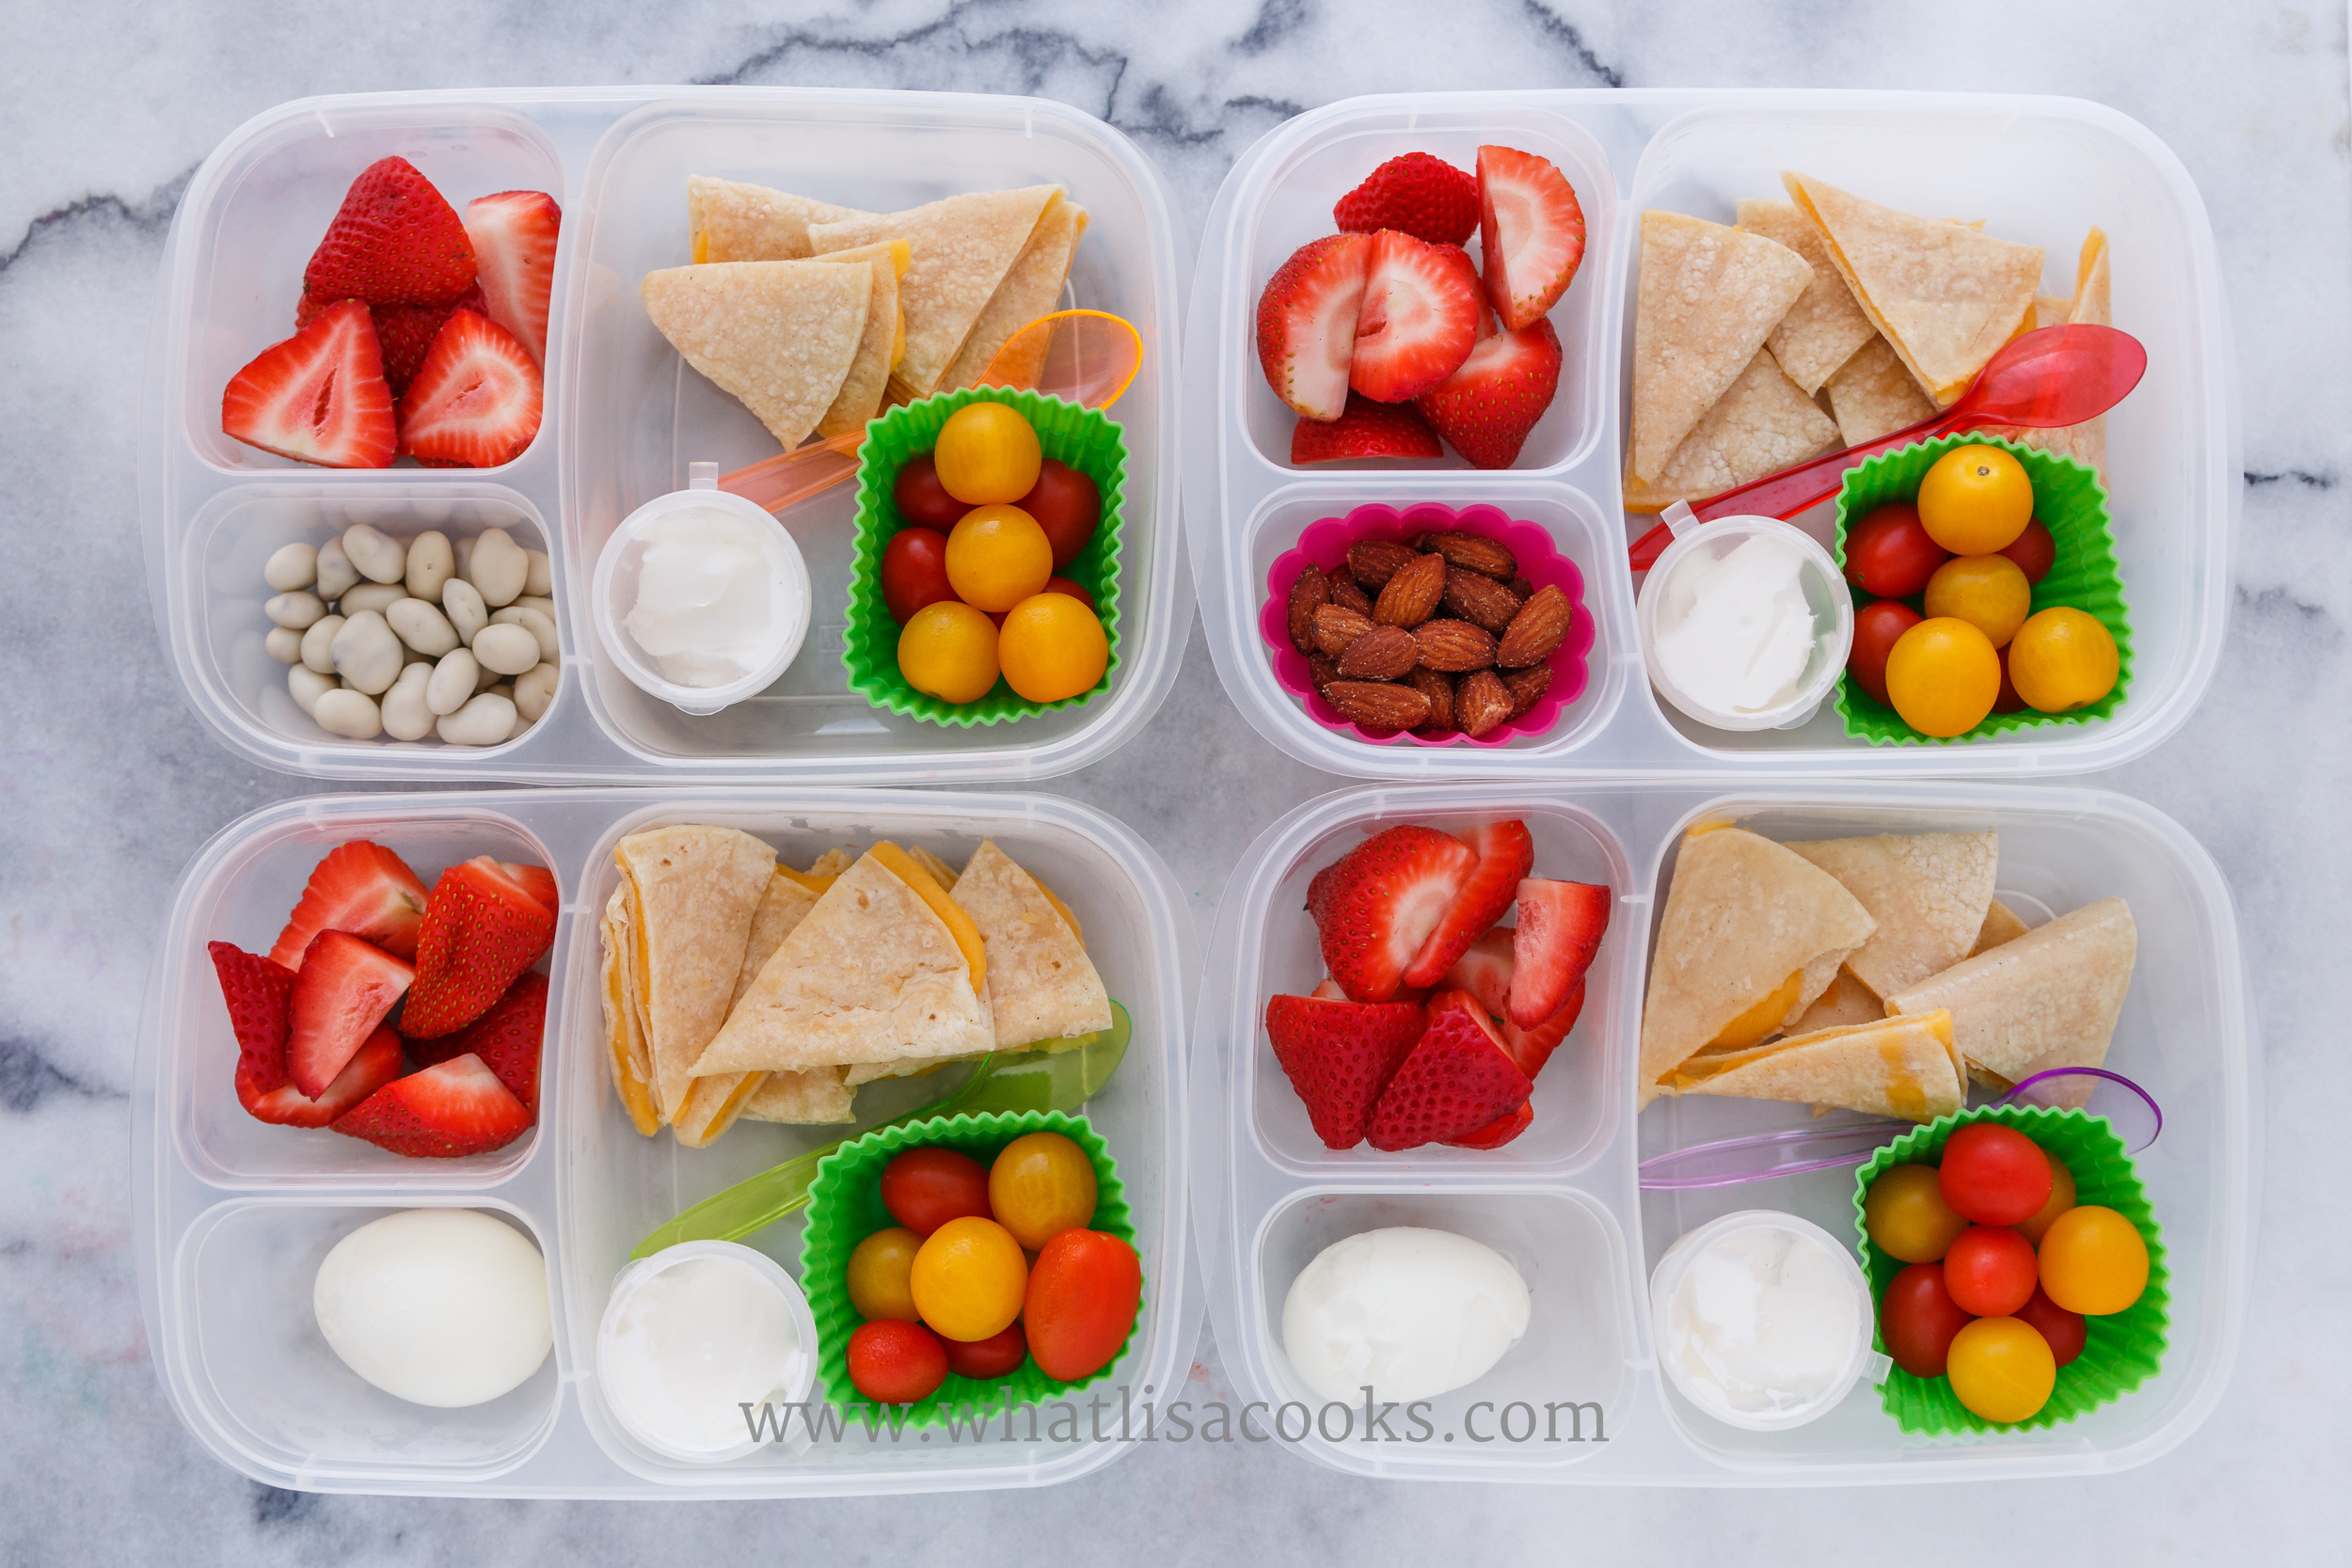 Quesadillas on gluten free corn tortillas, tomatoes, sour cream, strawberries.  Two have a boiled egg, one has almonds, one has yogurt covered raisins.  Packed in EasyLunchboxes, with  silicon muffin cups  and these  dip cups .